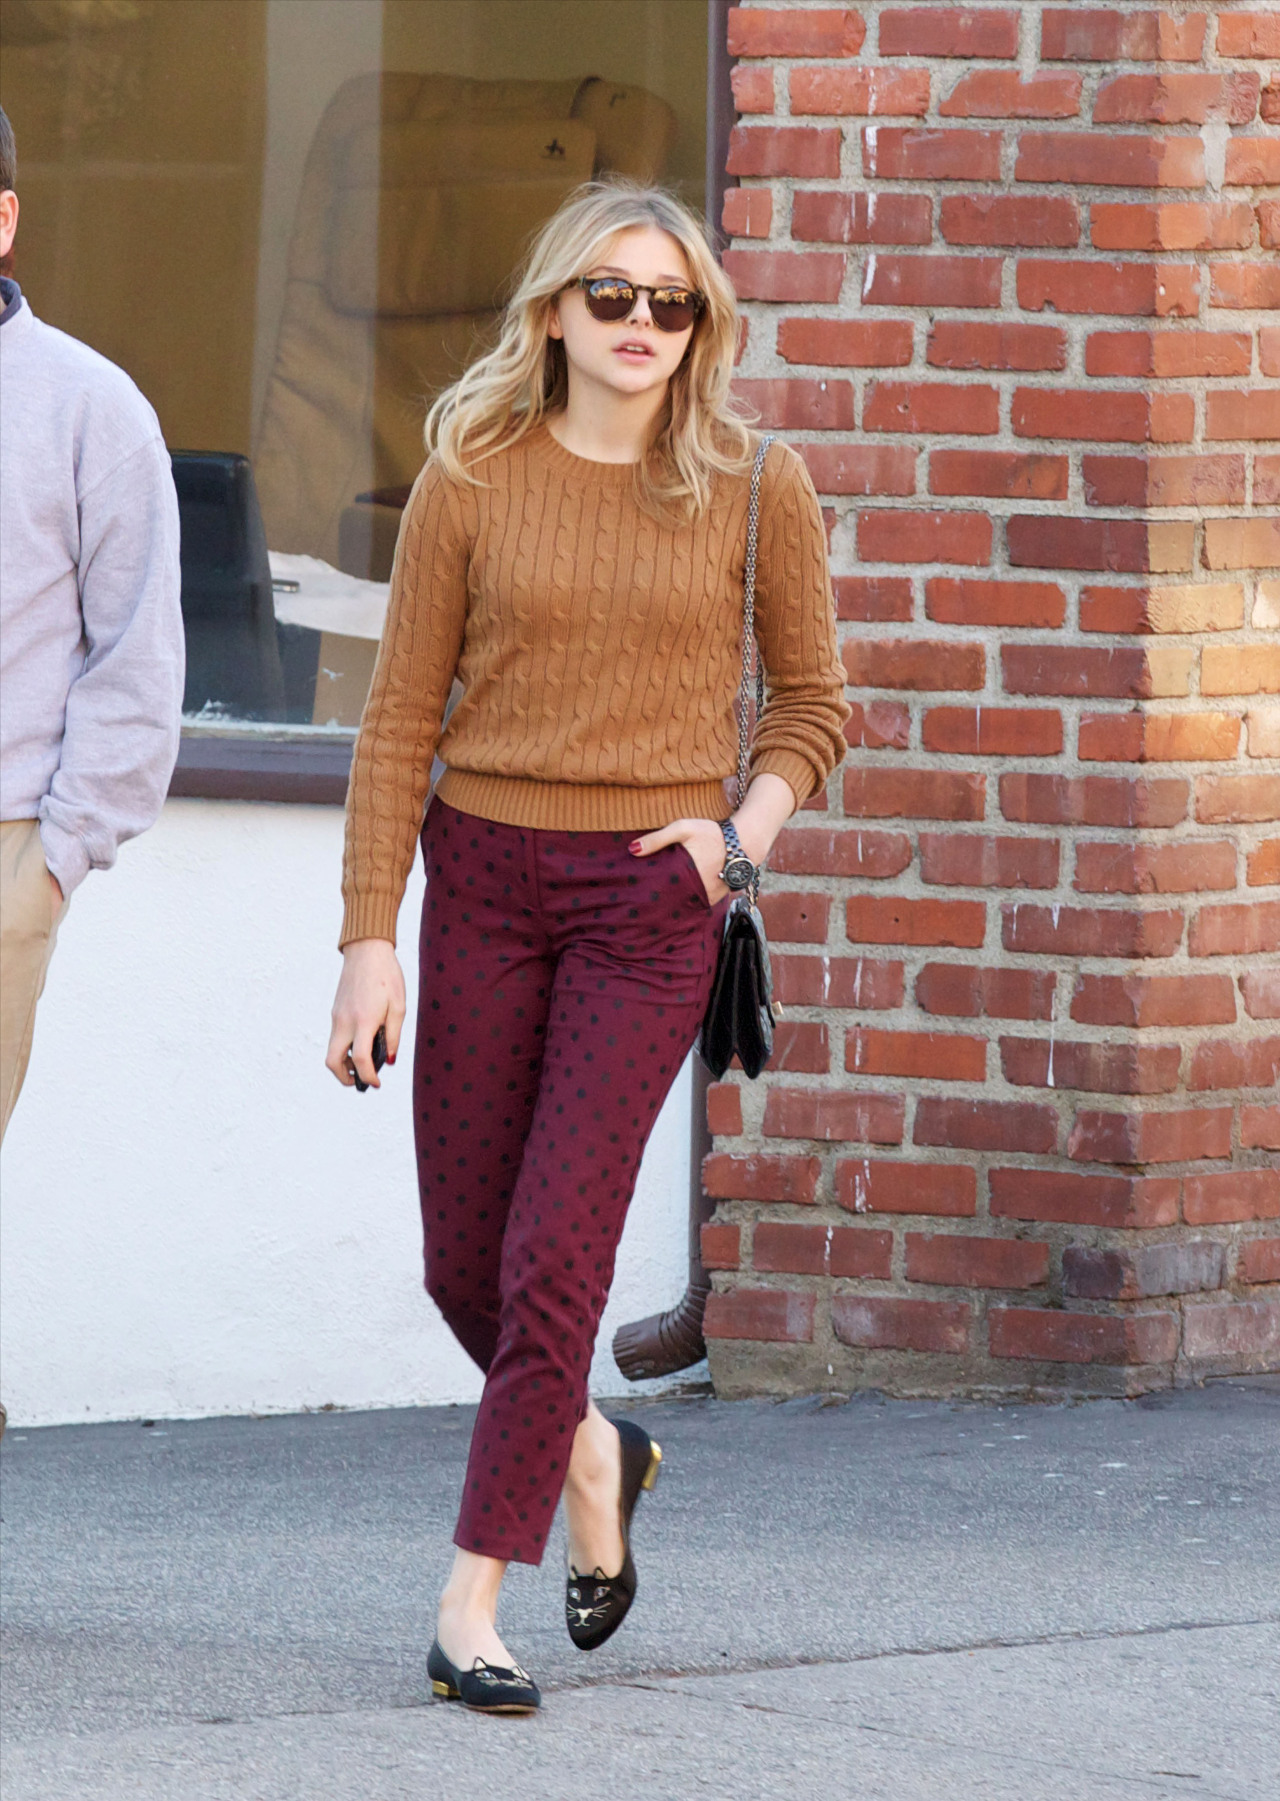 Chloe Moretz out in LA, January 12th Wearing Charlotte Olympia kitty flats